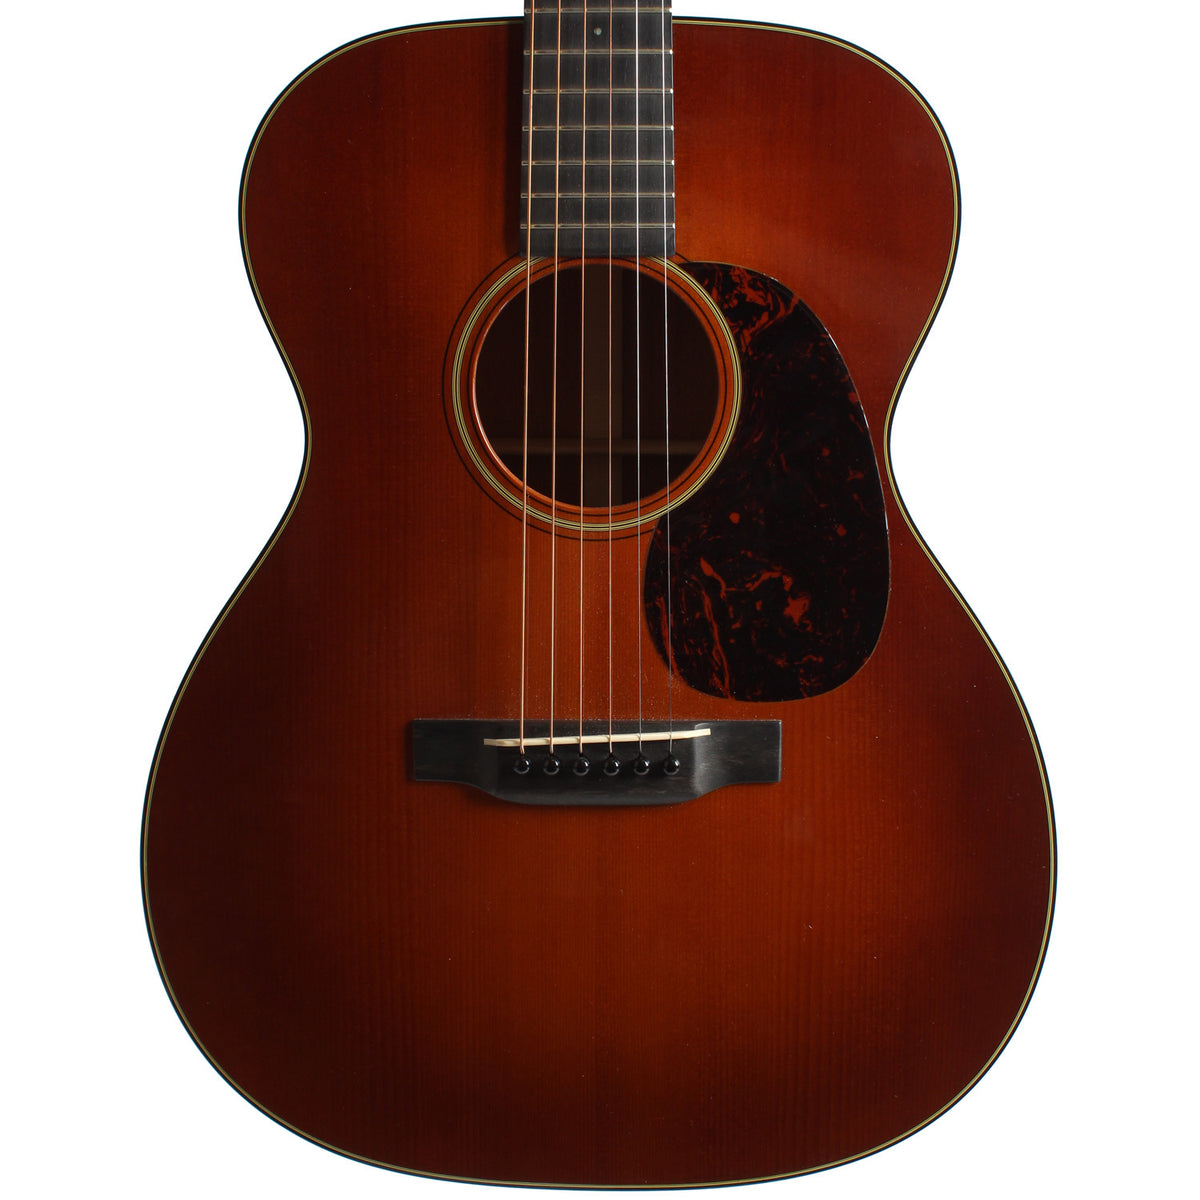 2013 Martin OM-18 Authentic 1933 - Garrett Park Guitars  - 2